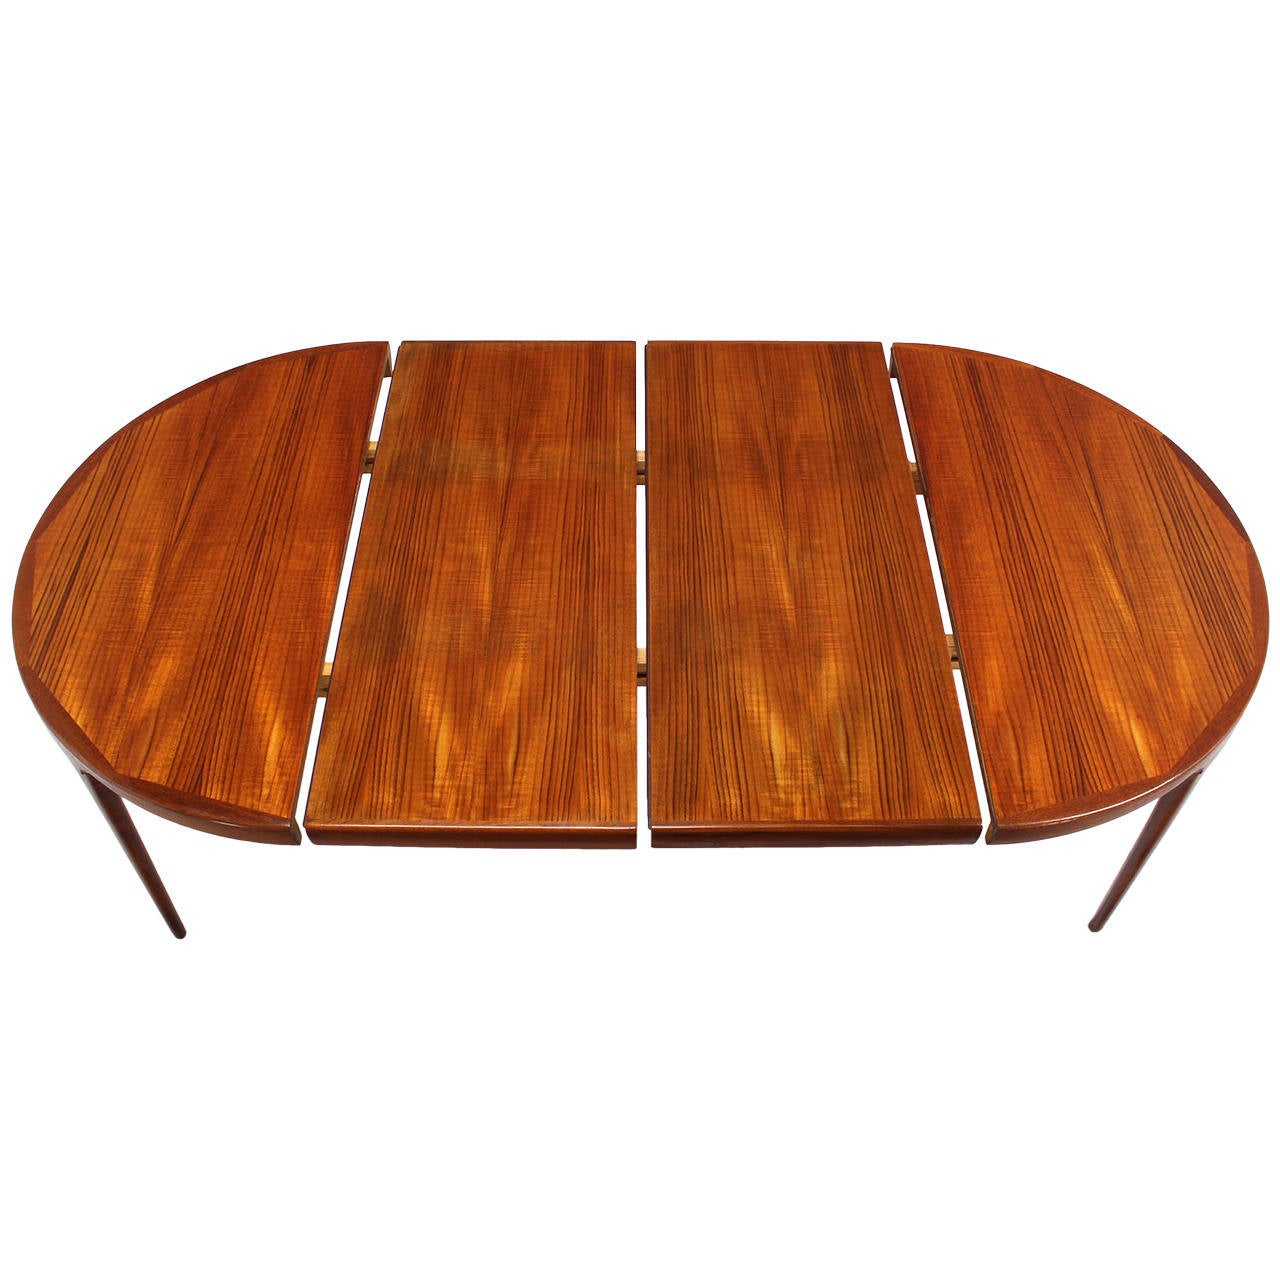 Danish Mid Century Modern Round Teak Dining Table With Two Leaves For Sale